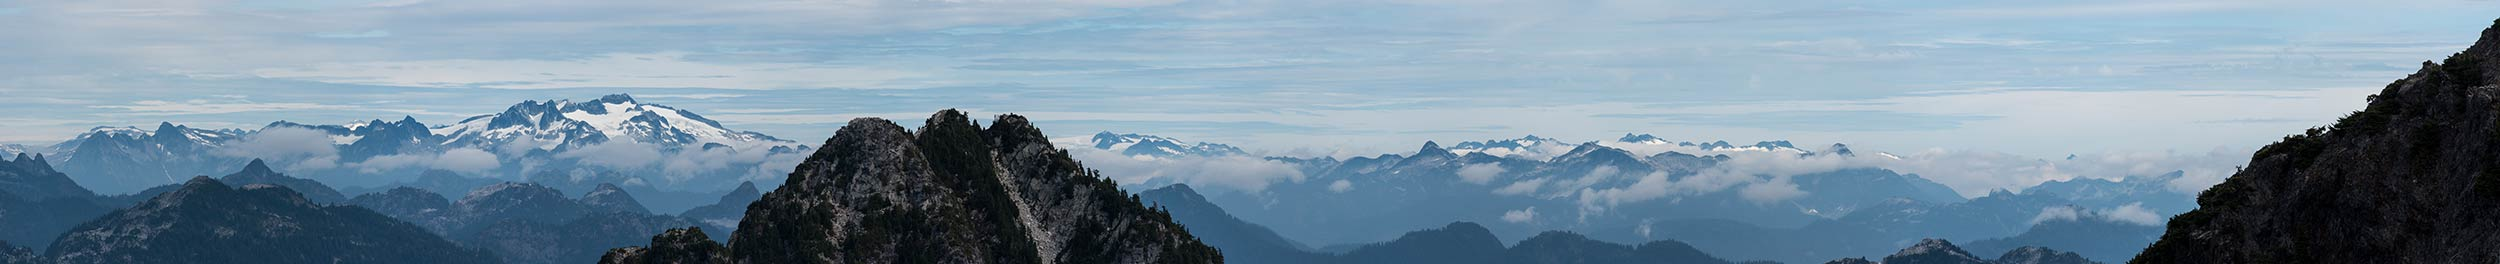 howe_sound_crest_trail_brunswick_view_pano.jpg